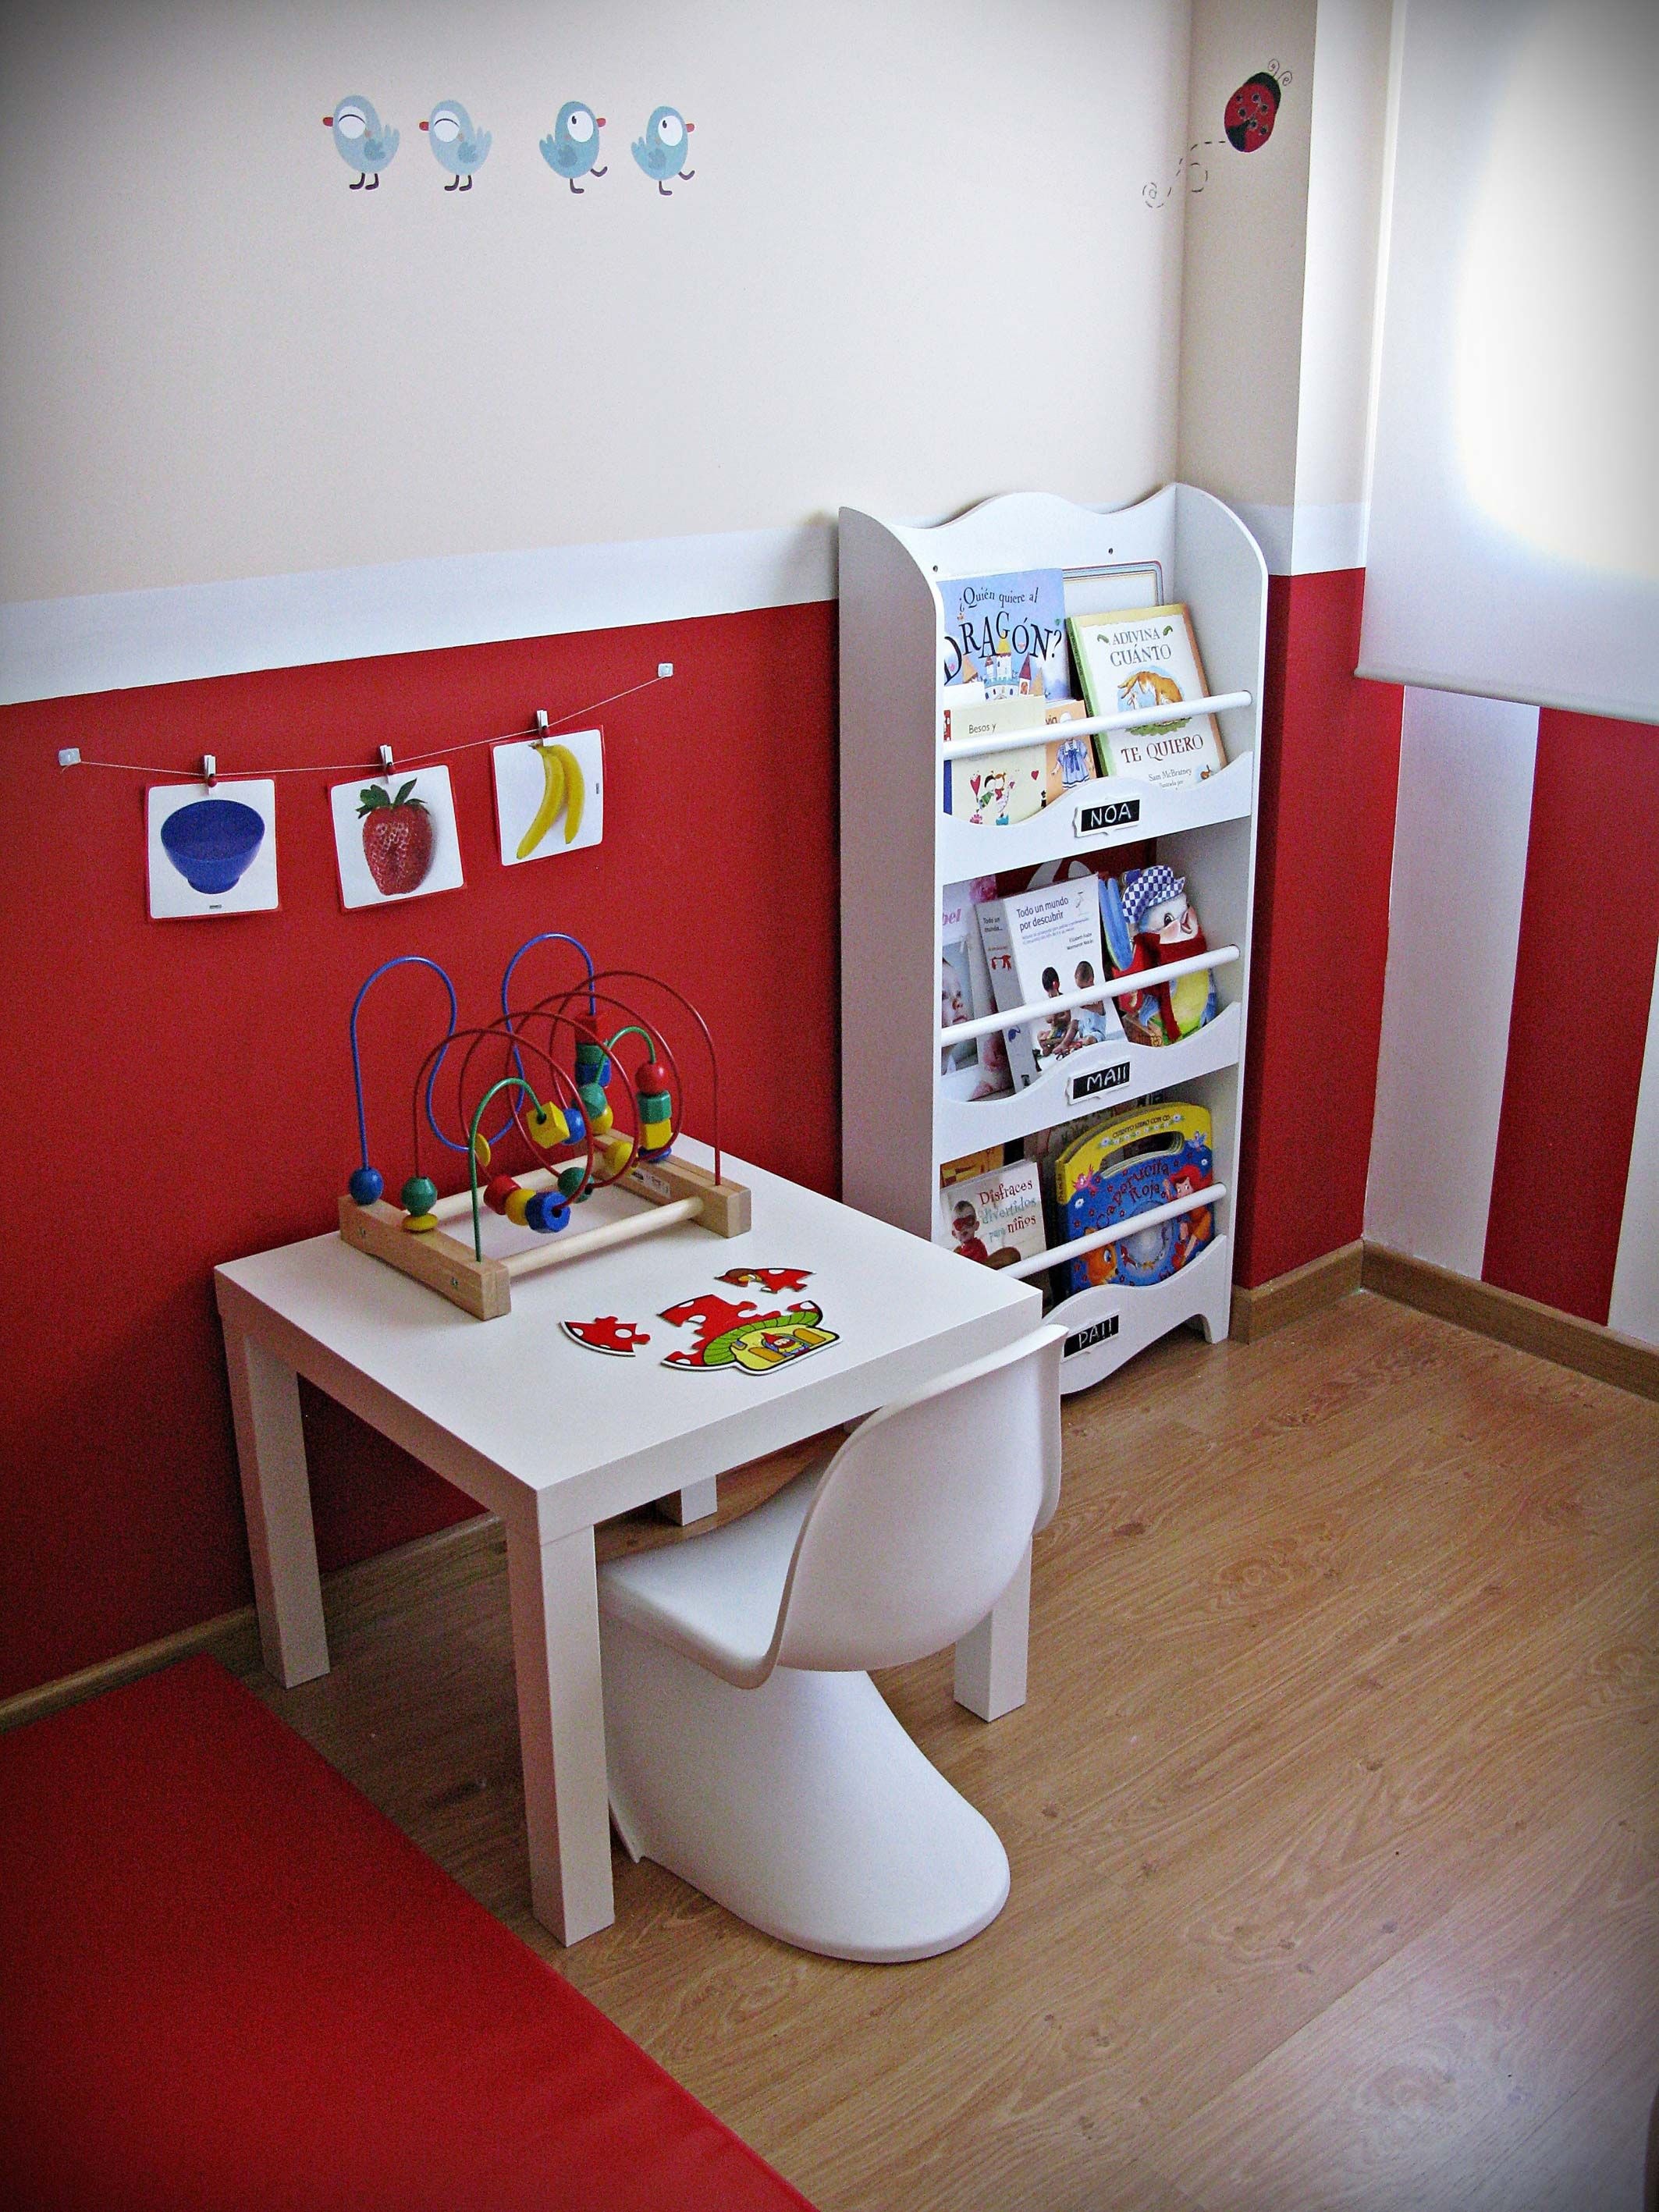 similar to what I have in the living room for my daughter ...